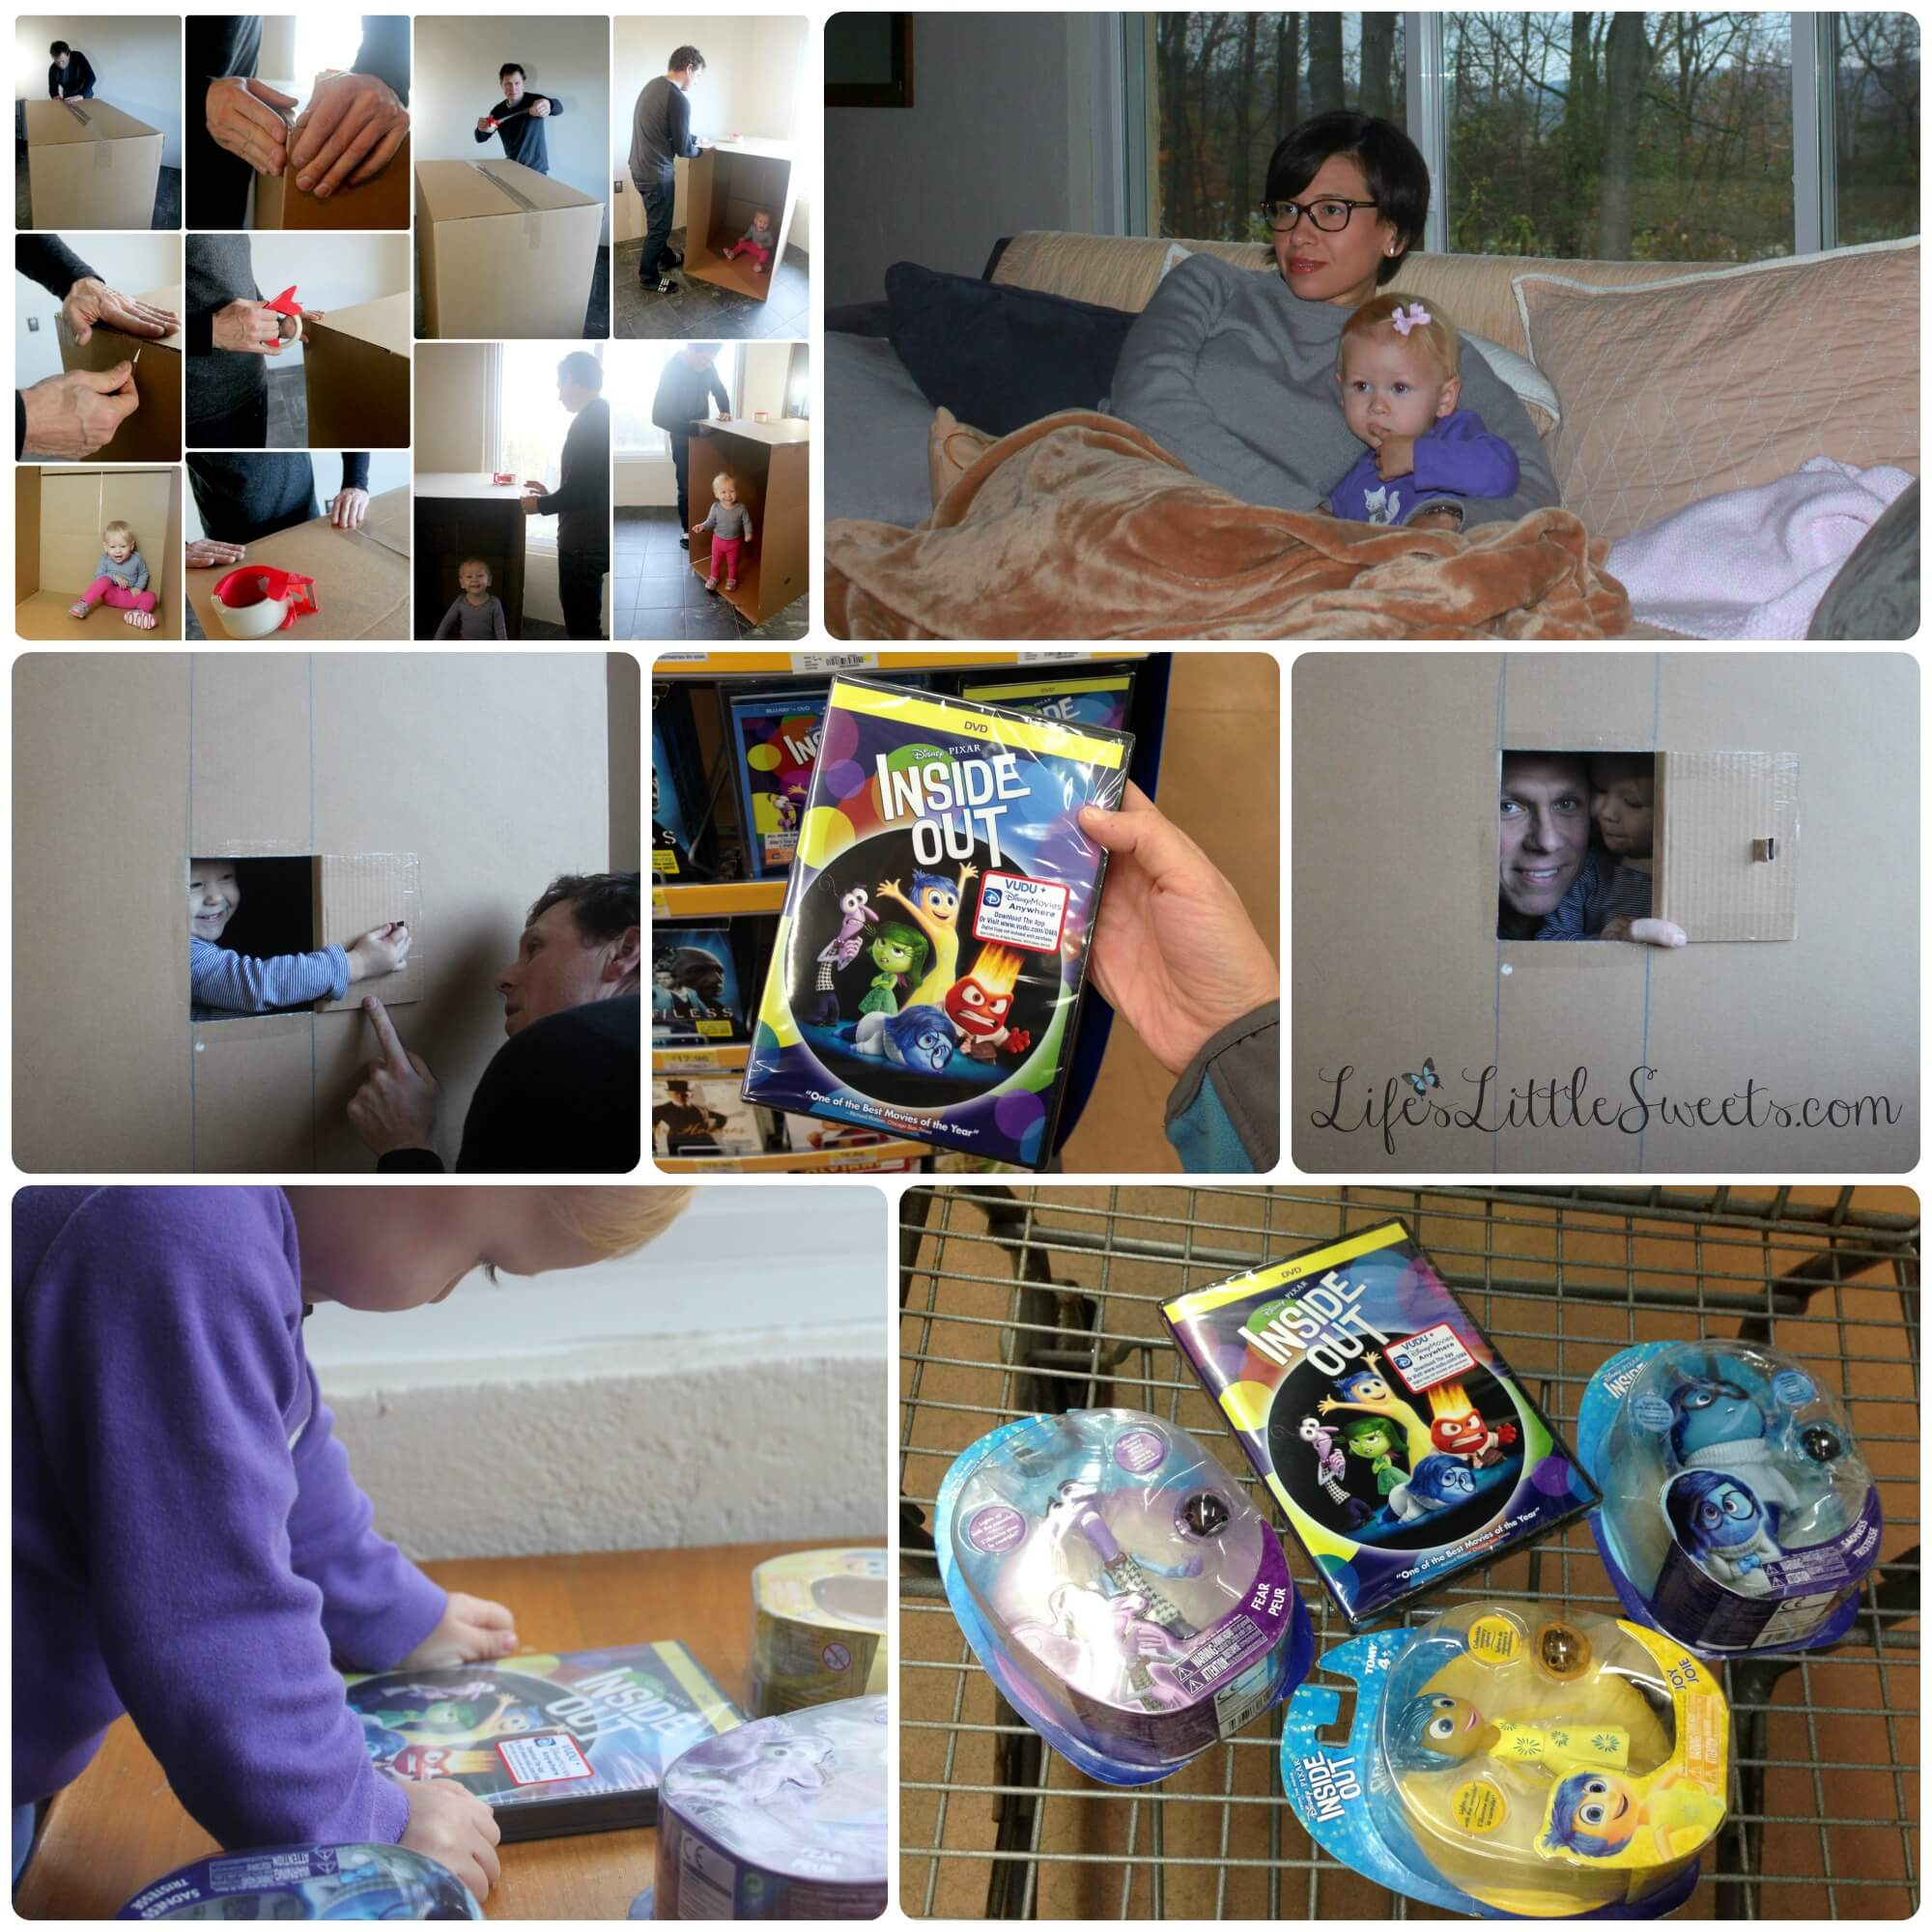 """Inside Out"" Movie, TOMY Toys & DIY Imagination Box #ad #InsideOutEmotions #CollectiveBias #lifeslittlesweets #diy"